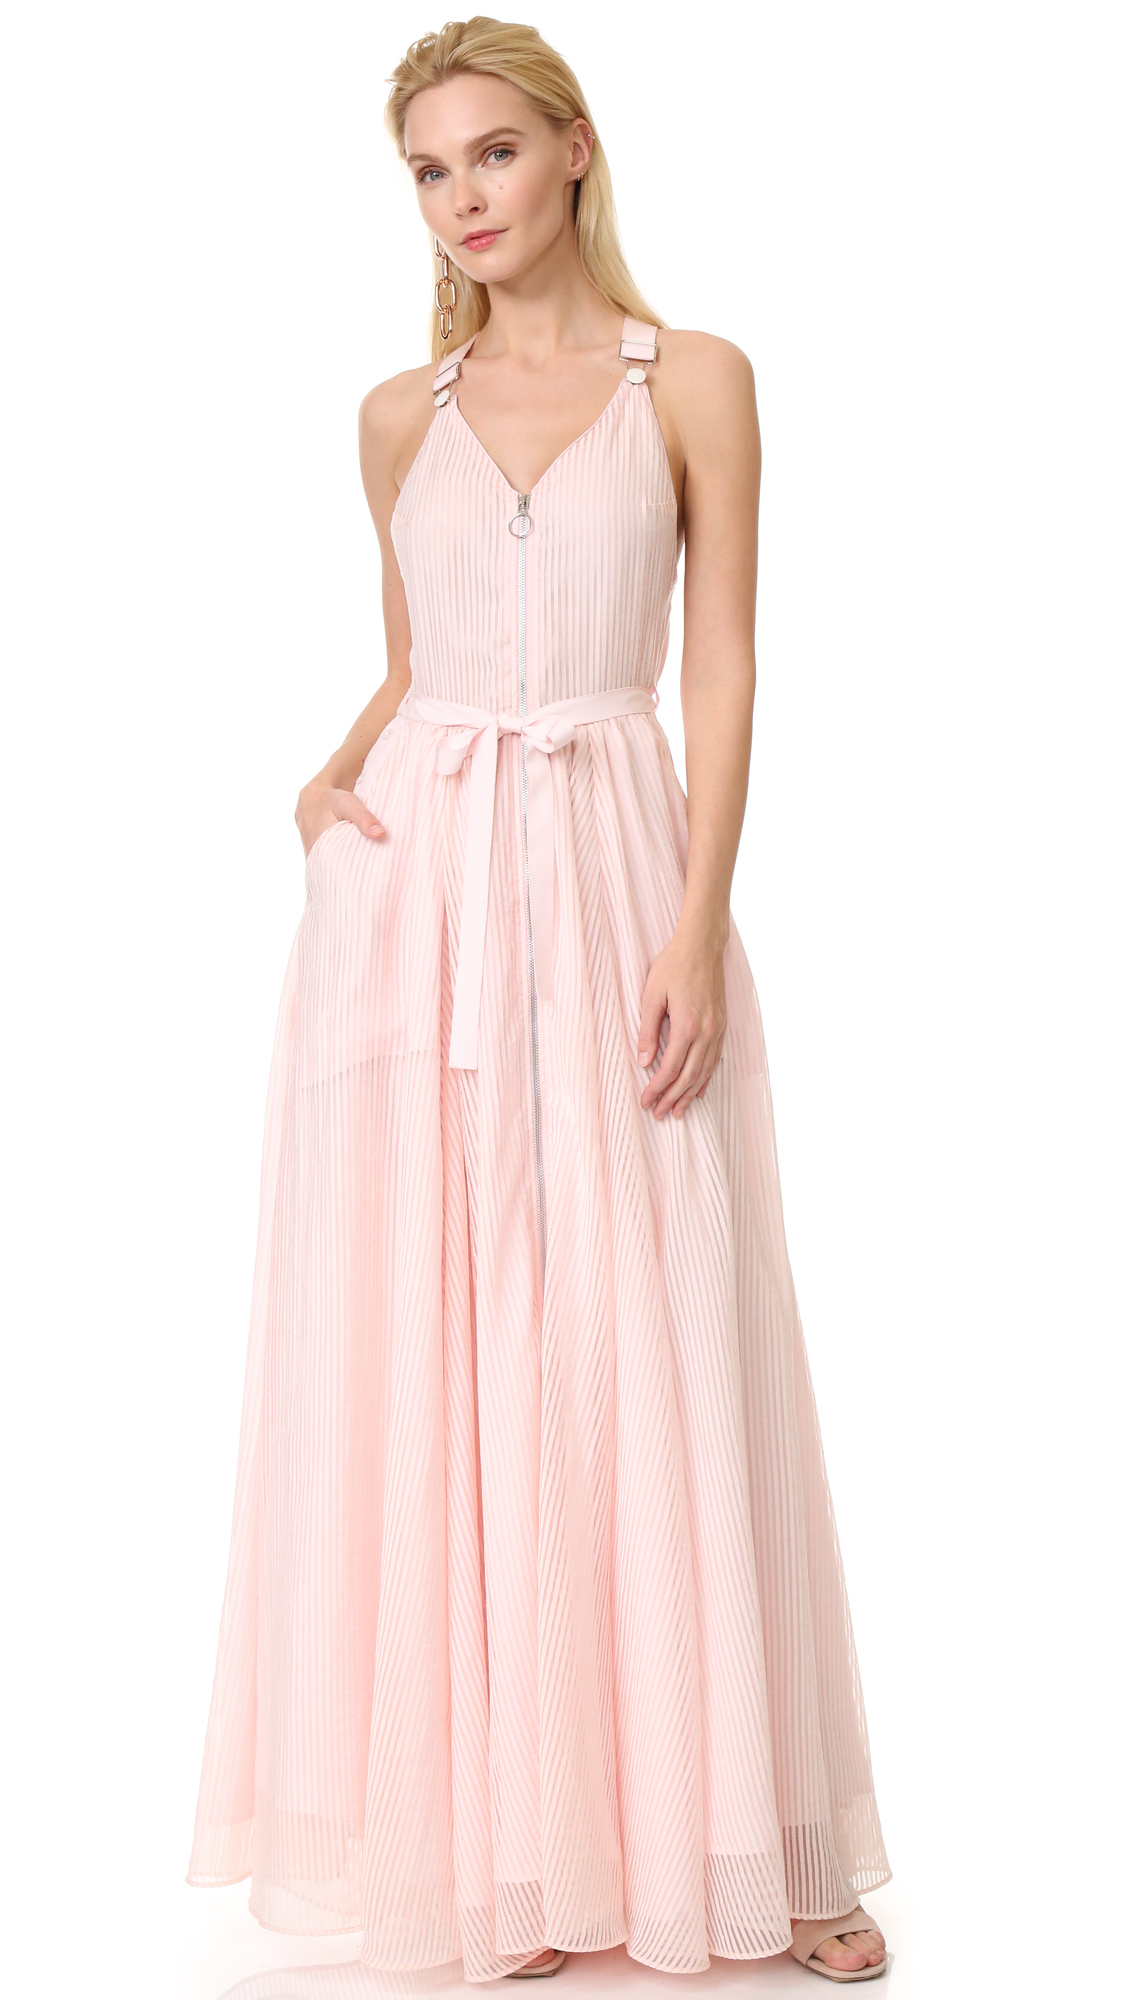 Adam selman long overall gown shopbop save up to 25 use code event18 ombrellifo Choice Image